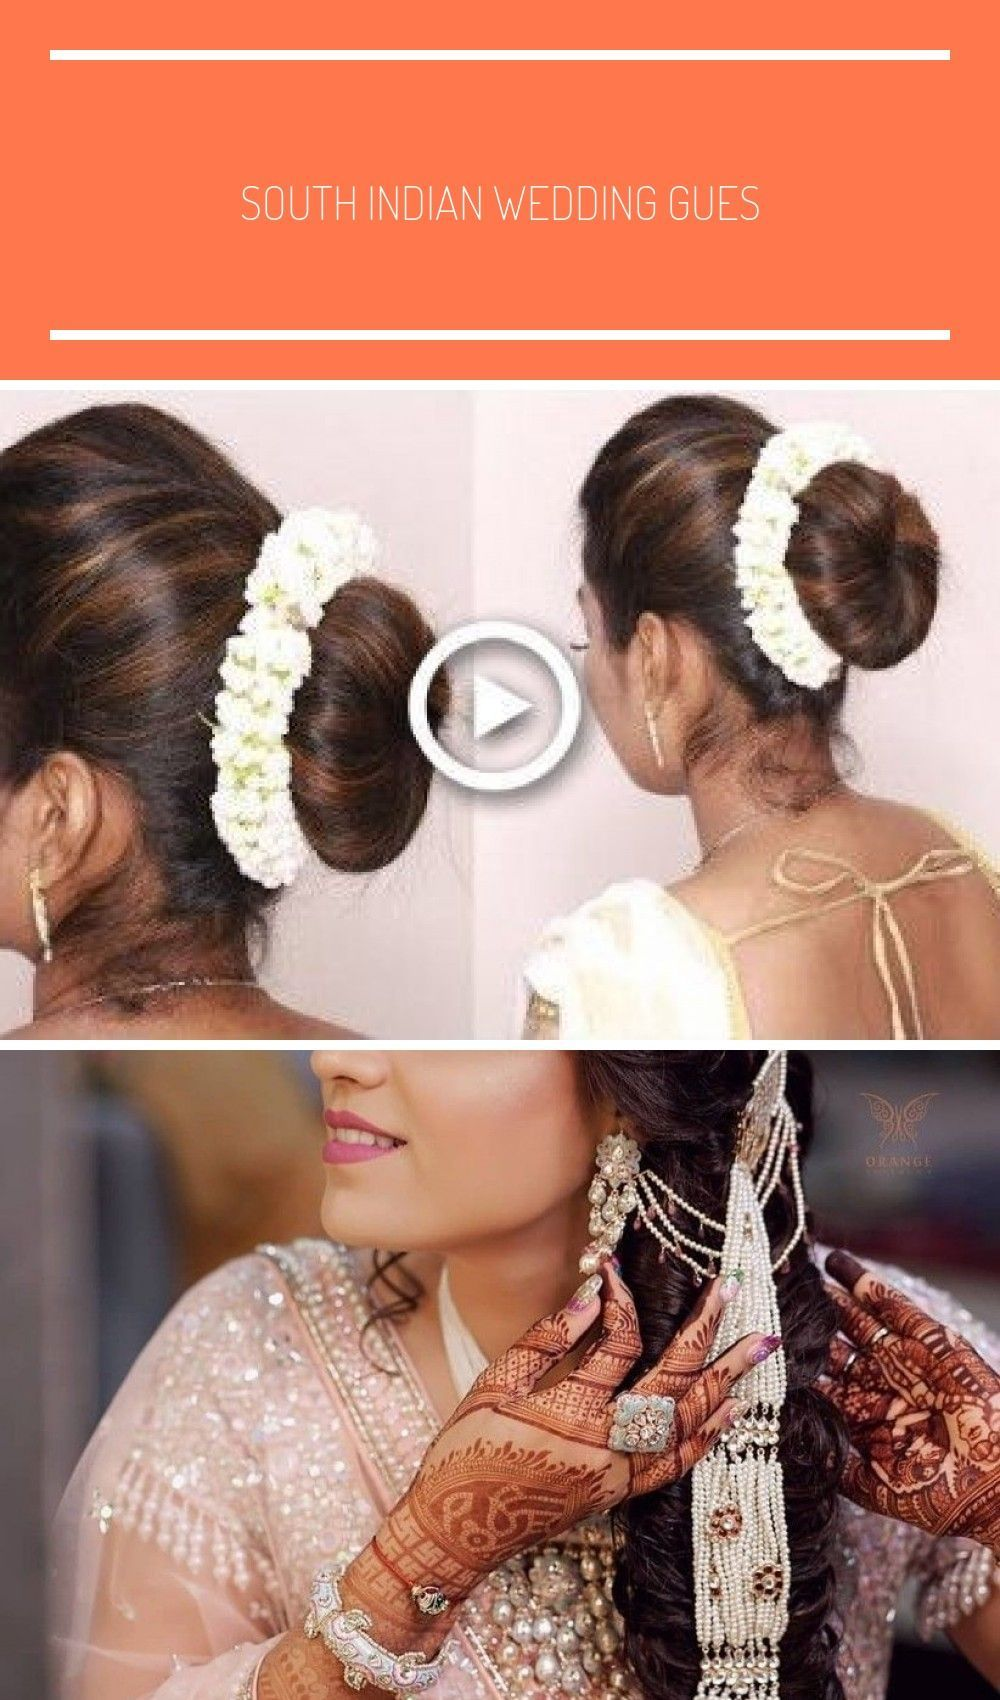 South Indian Wedding Guest Hairstyles Tamil Puff With Bun Hairstyles Puff Hairstyle Tricks Wedding Hair Hair Puff Wedding Guest Hairstyles Bun Hairstyles